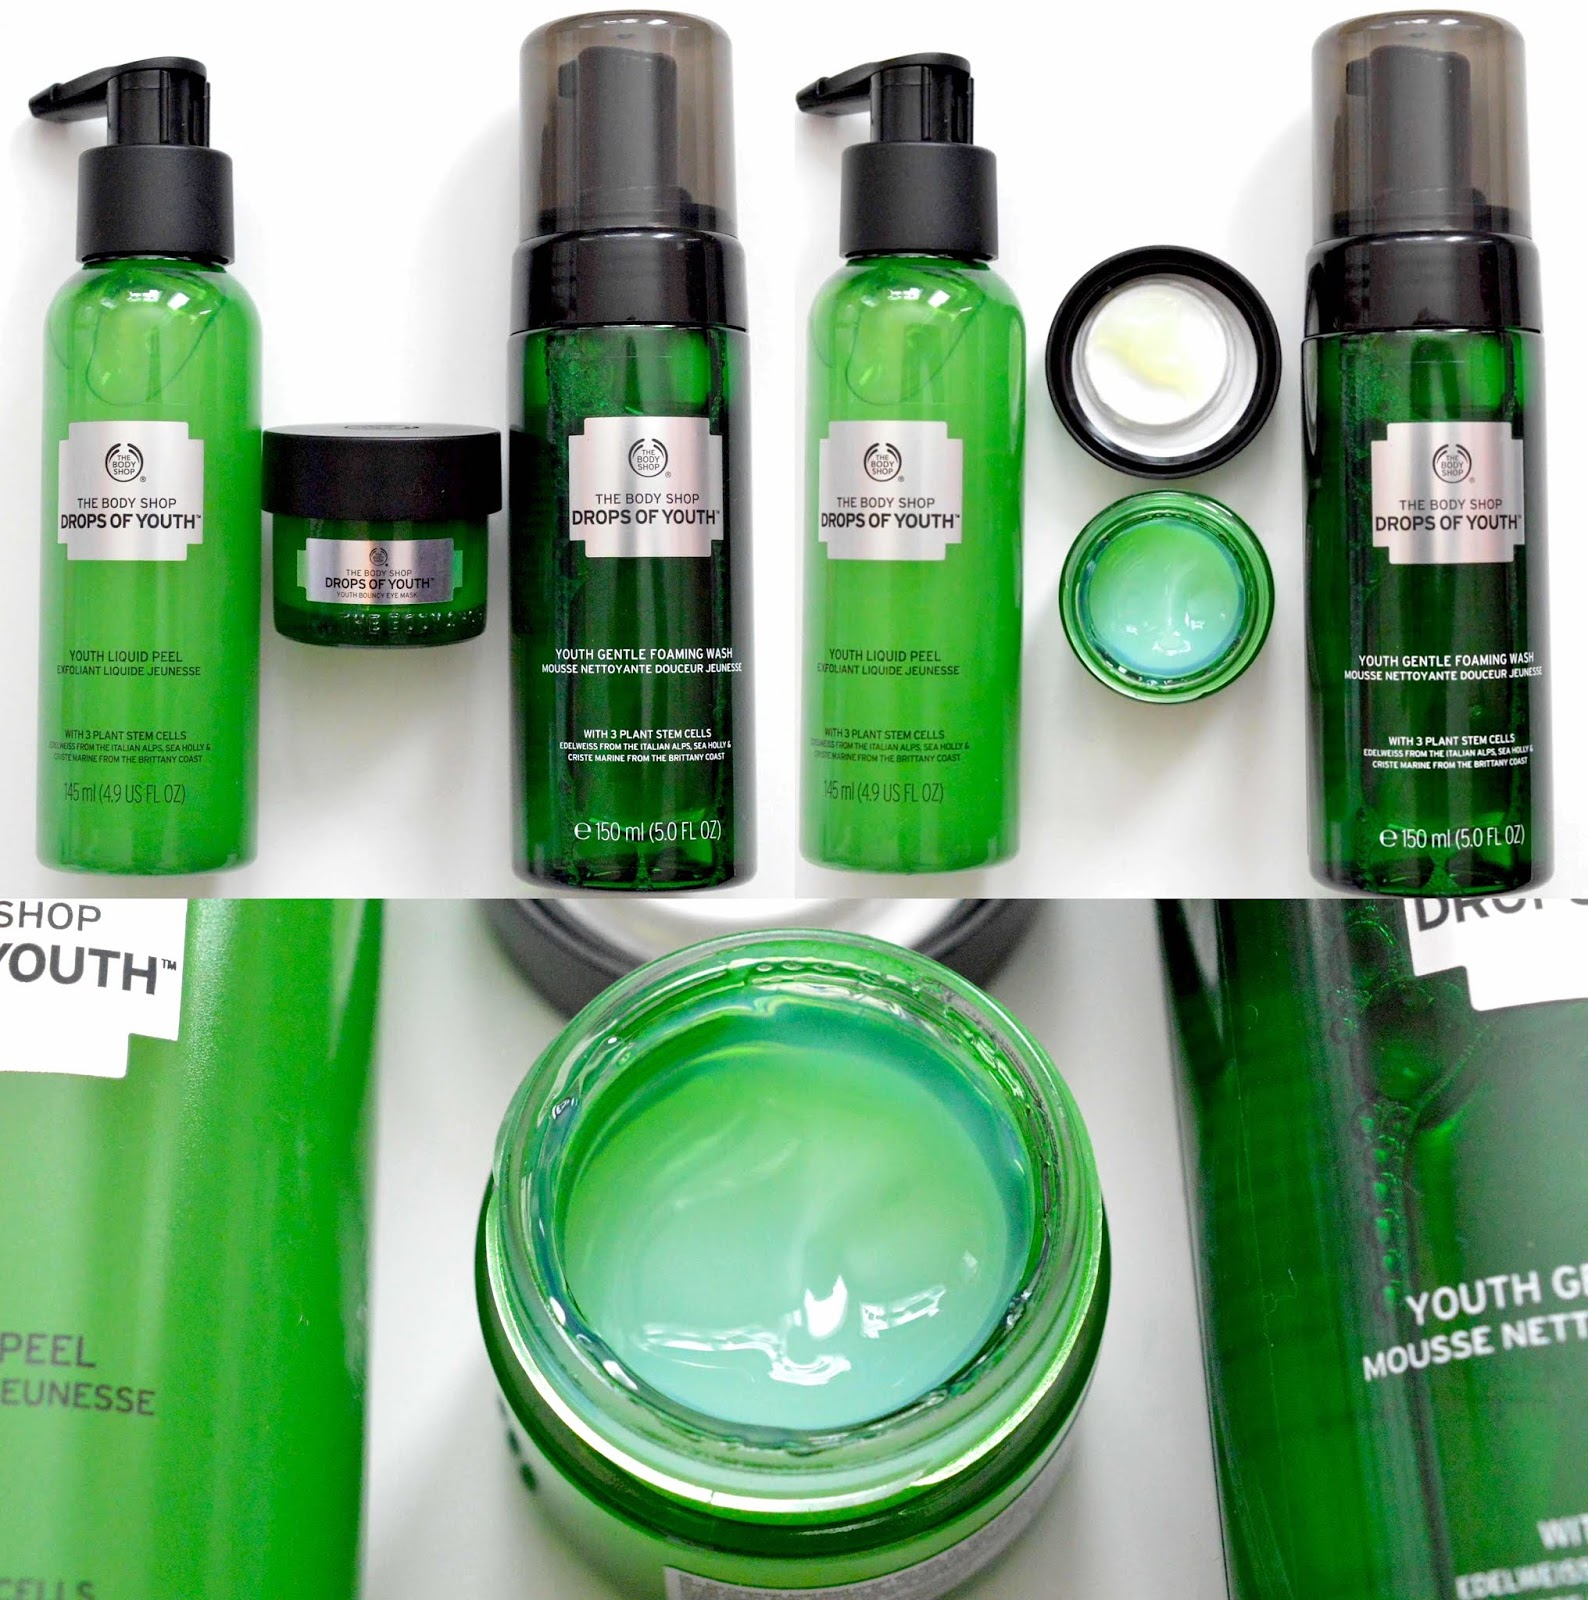 The Body Shop Drops of Youth Review